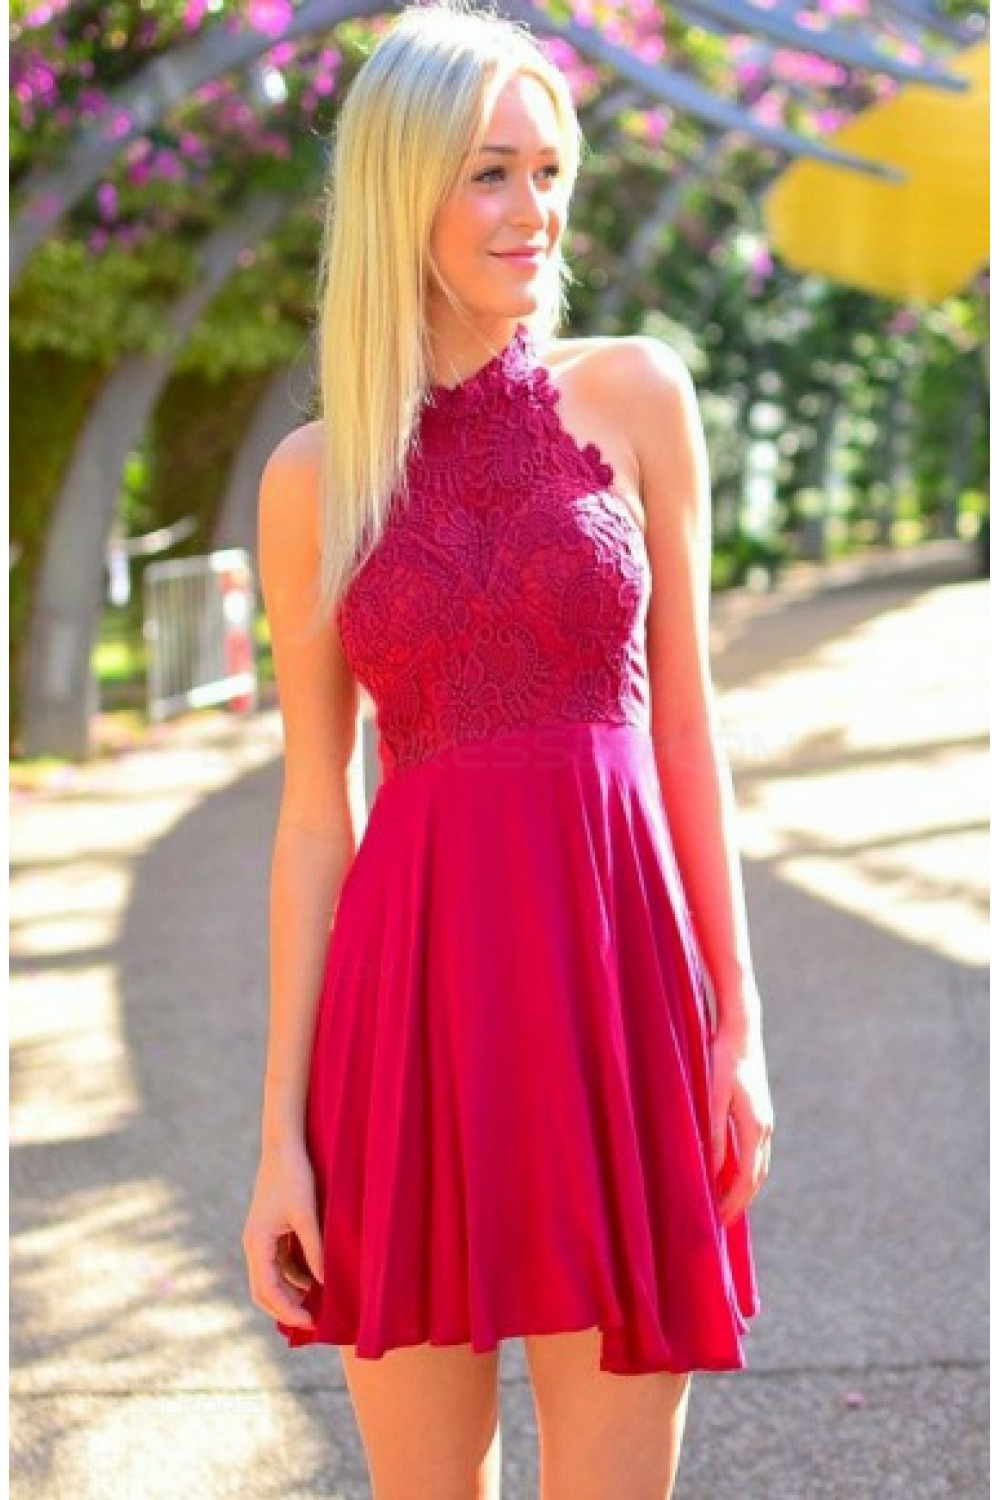 aa54be2e0a5d4 Short Halter Lace Chiffon Homecoming Cocktail Prom Dresses 3020534